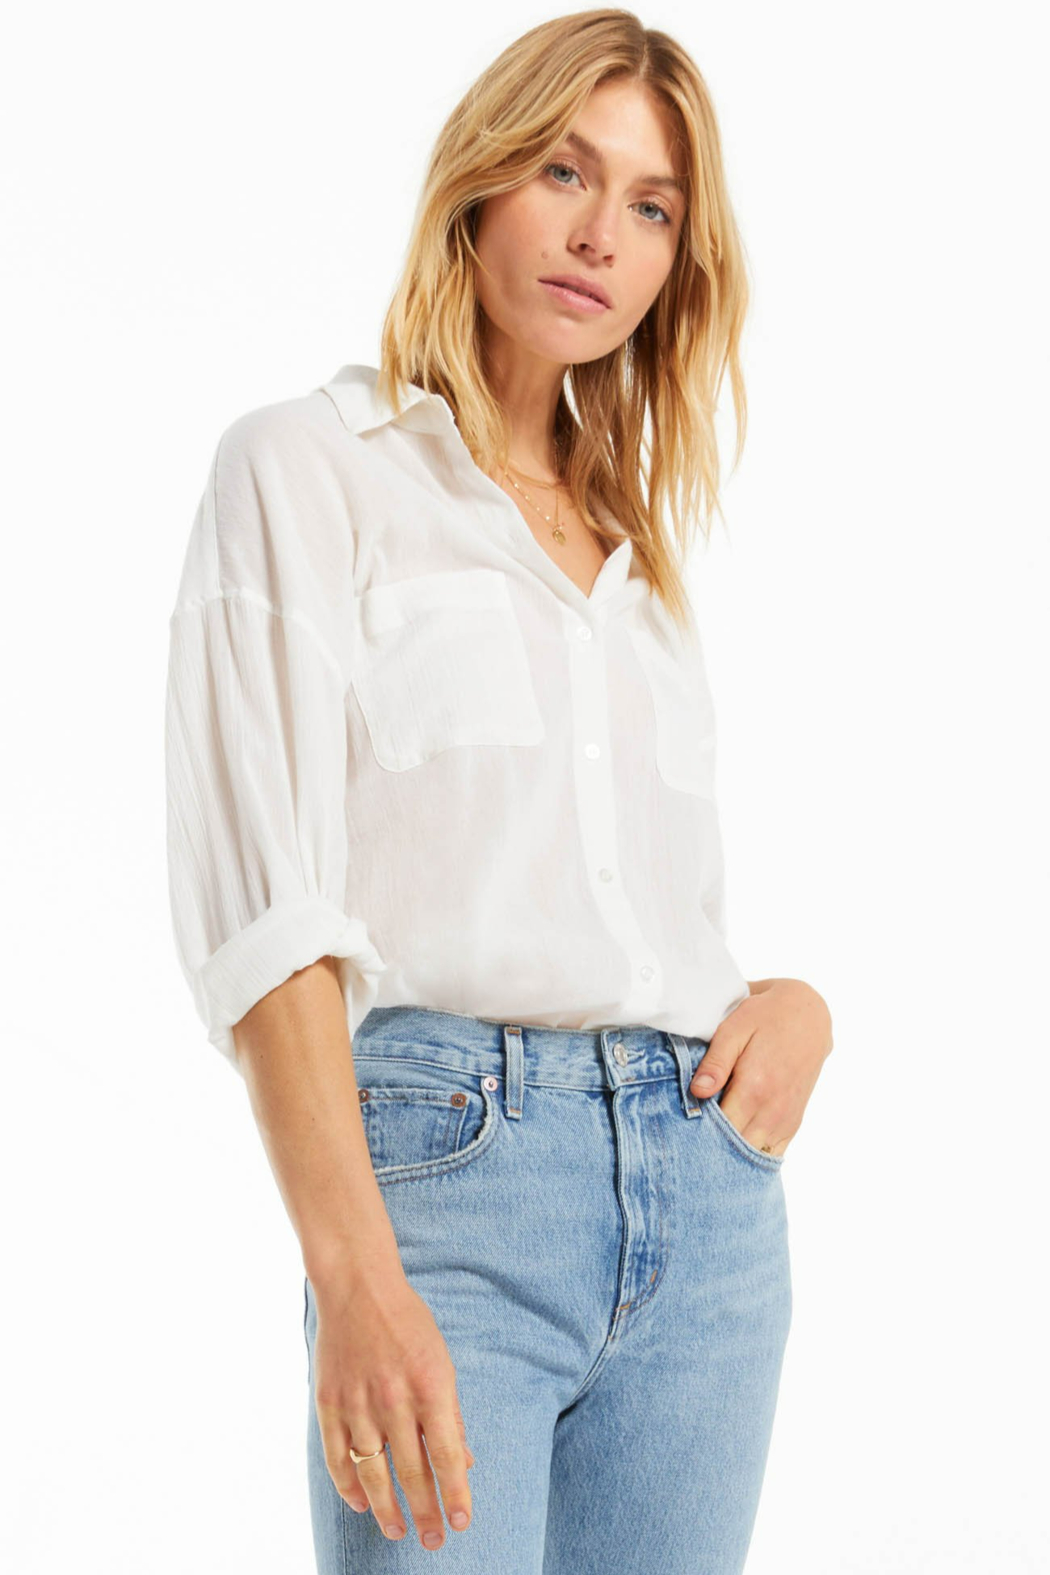 z supply Lalo Button Up Top - Side Cropped Image